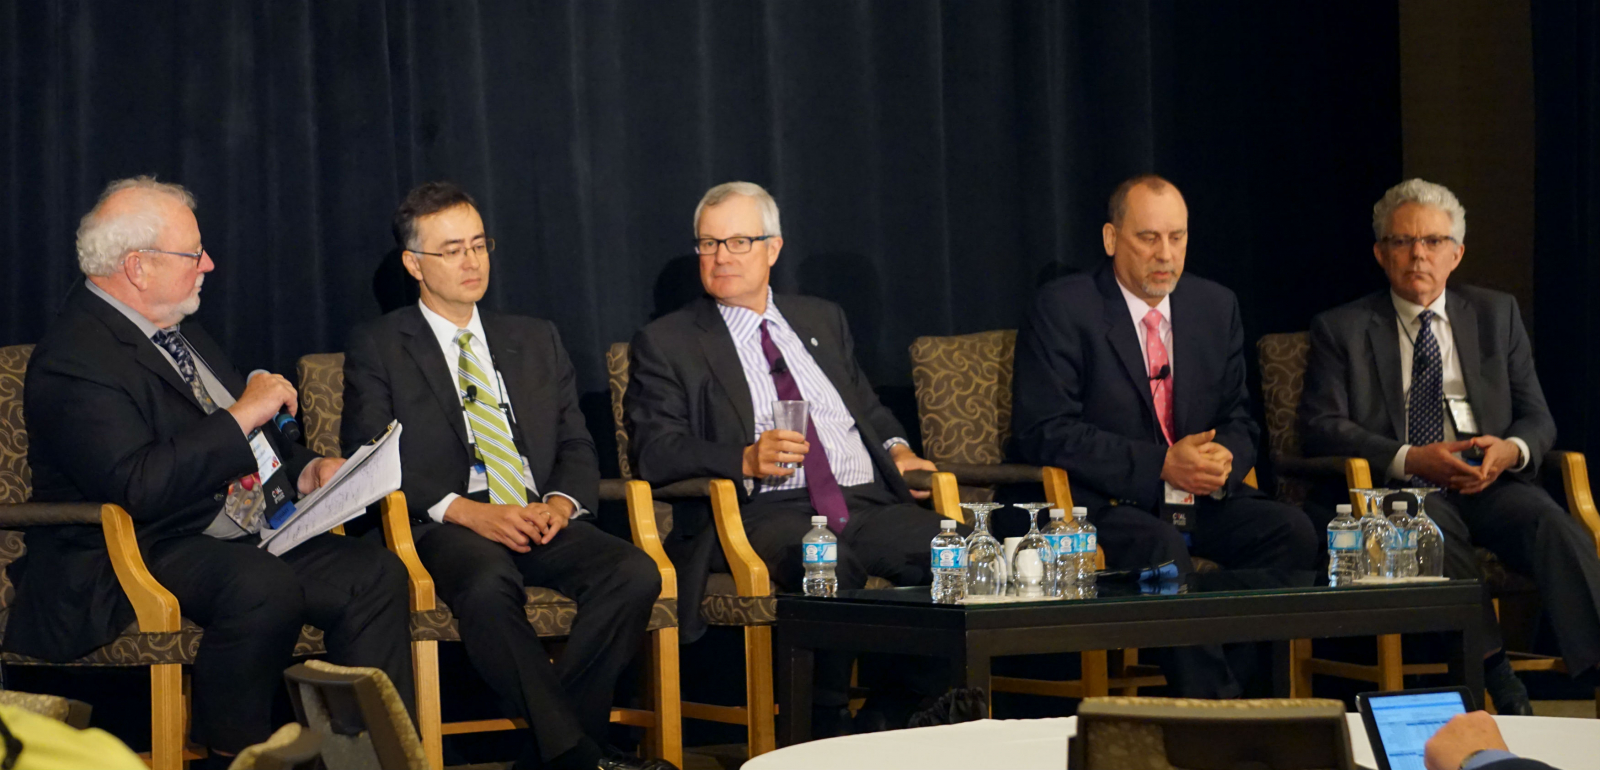 Coal Executives (left To Right) Gerard Mccloskey, Hans Daniels, Ernie  Thrasher, Brad Johnston And Robert Bell Discuss The State Of The Industry  At The 2016